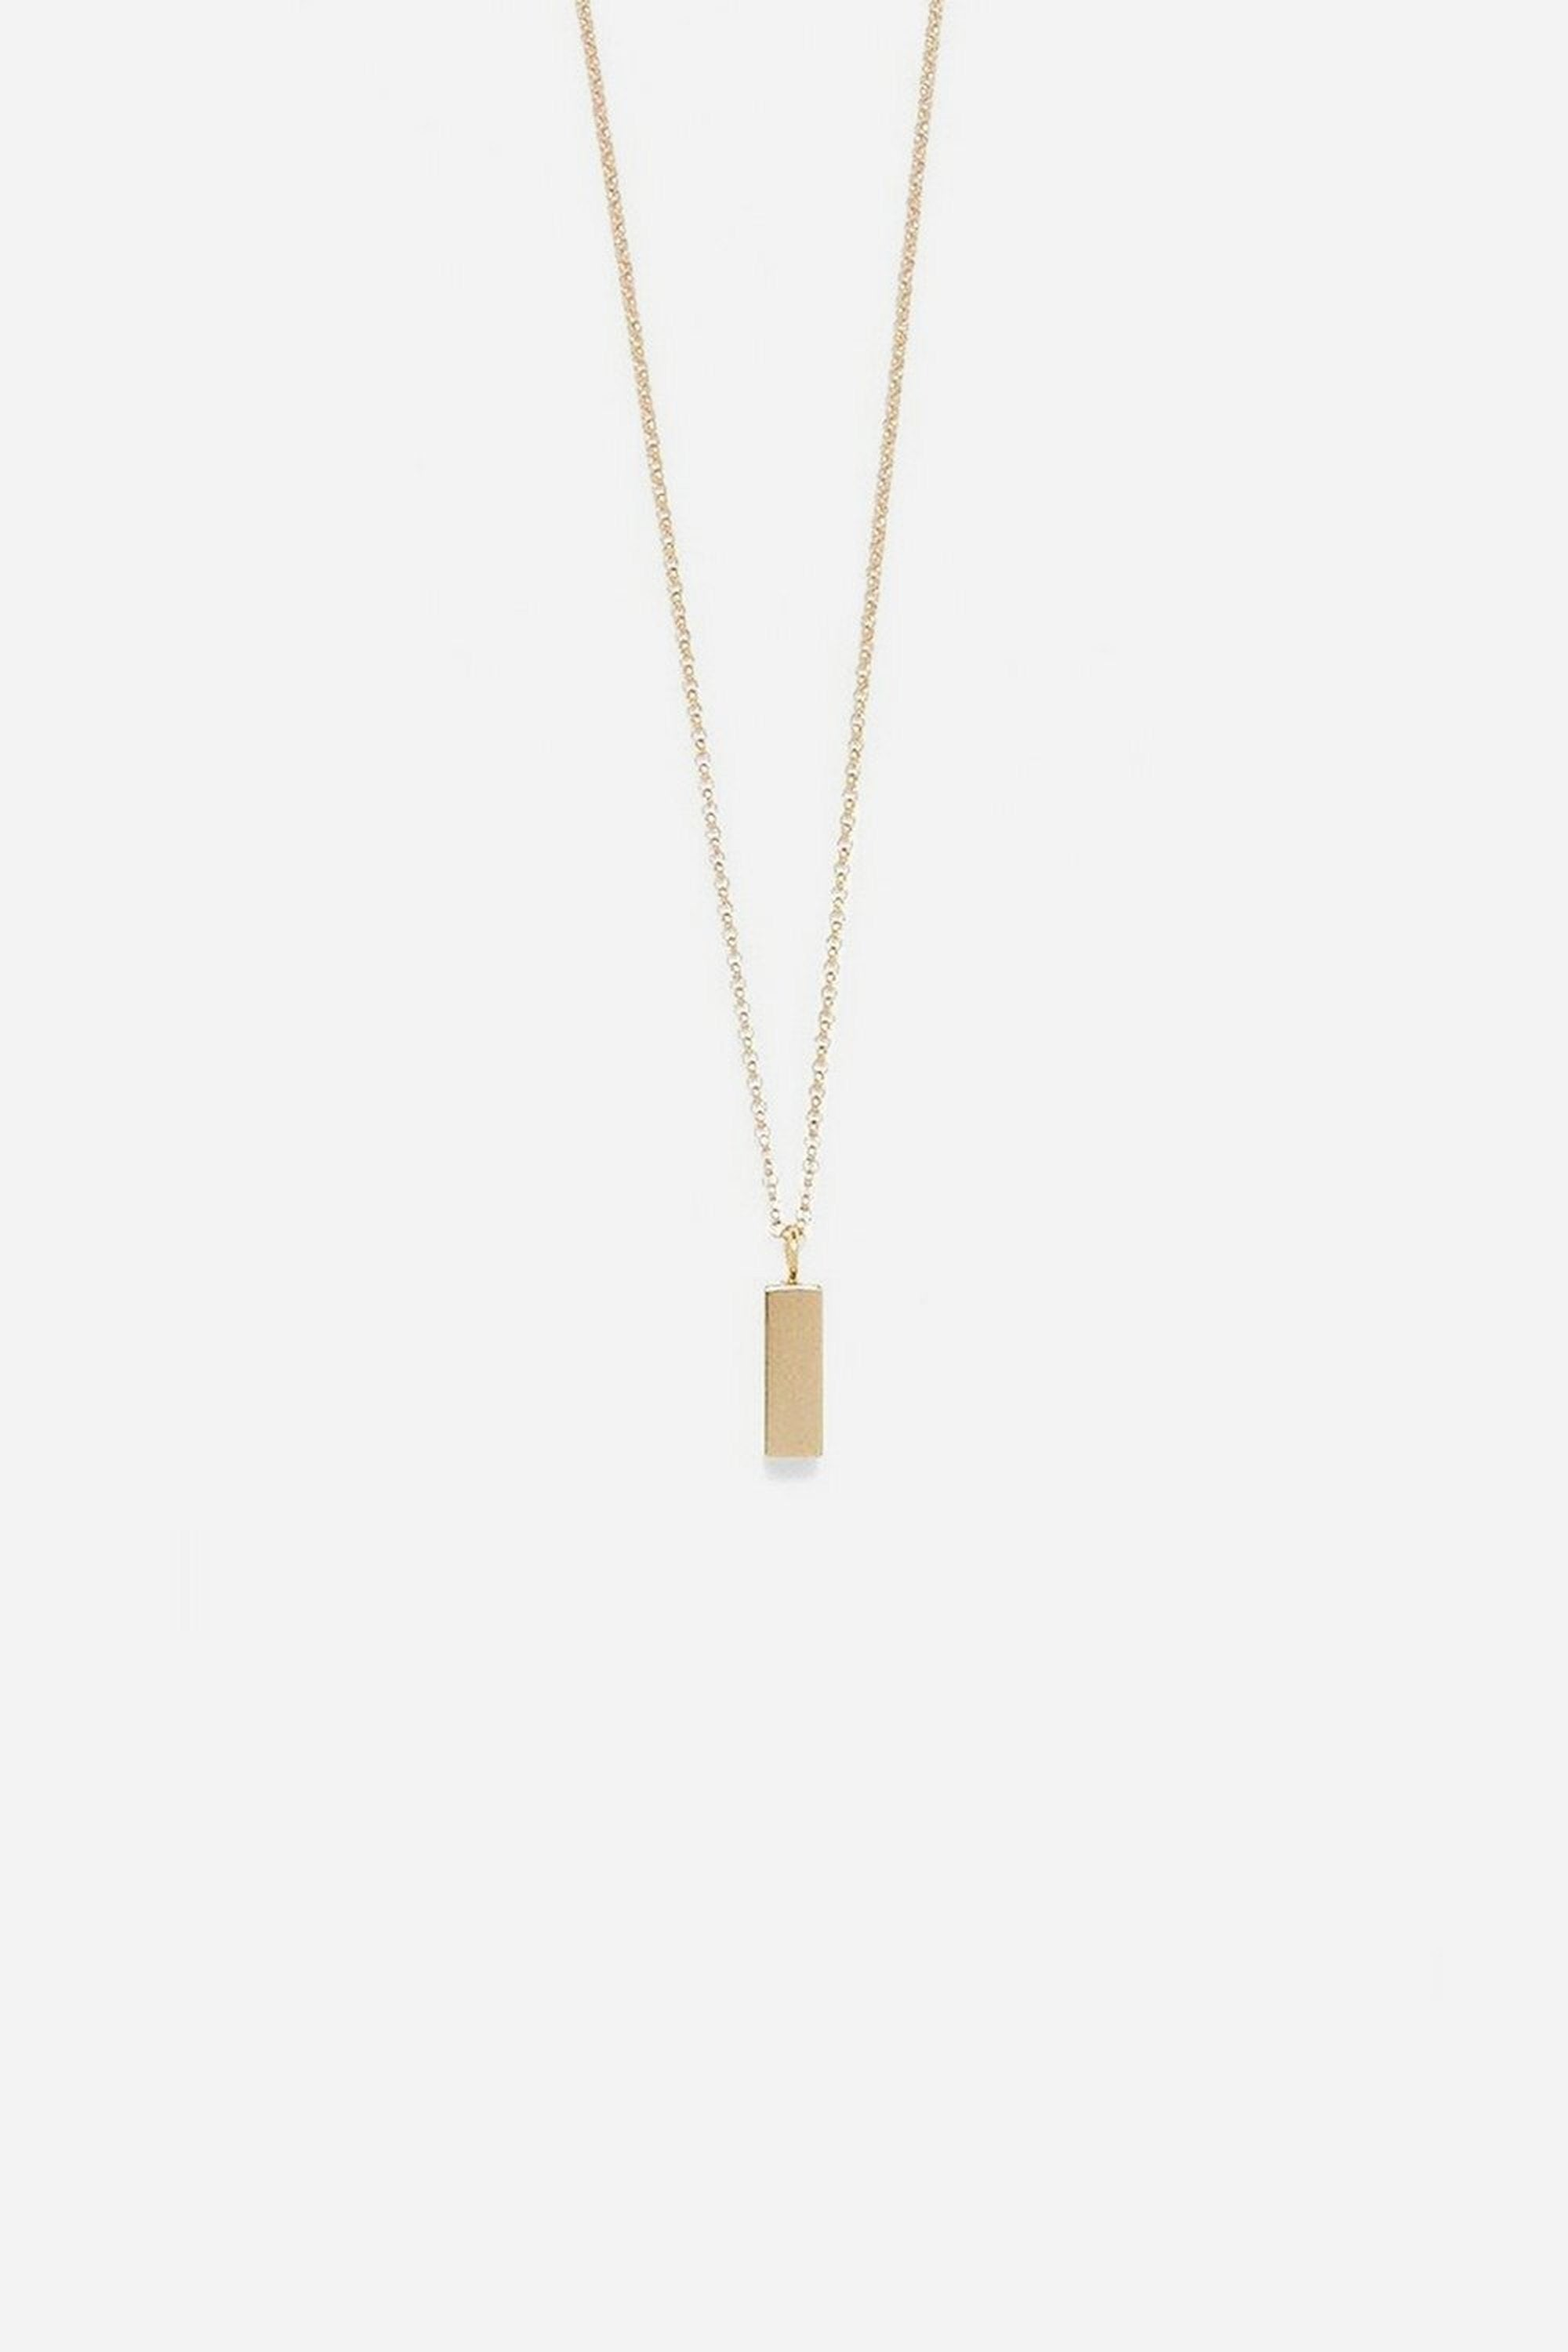 Modern Citizen | Modern Citizen-14K Gold Long Brick Necklace (Gold)-Necklaces-One Size-Gold- $138